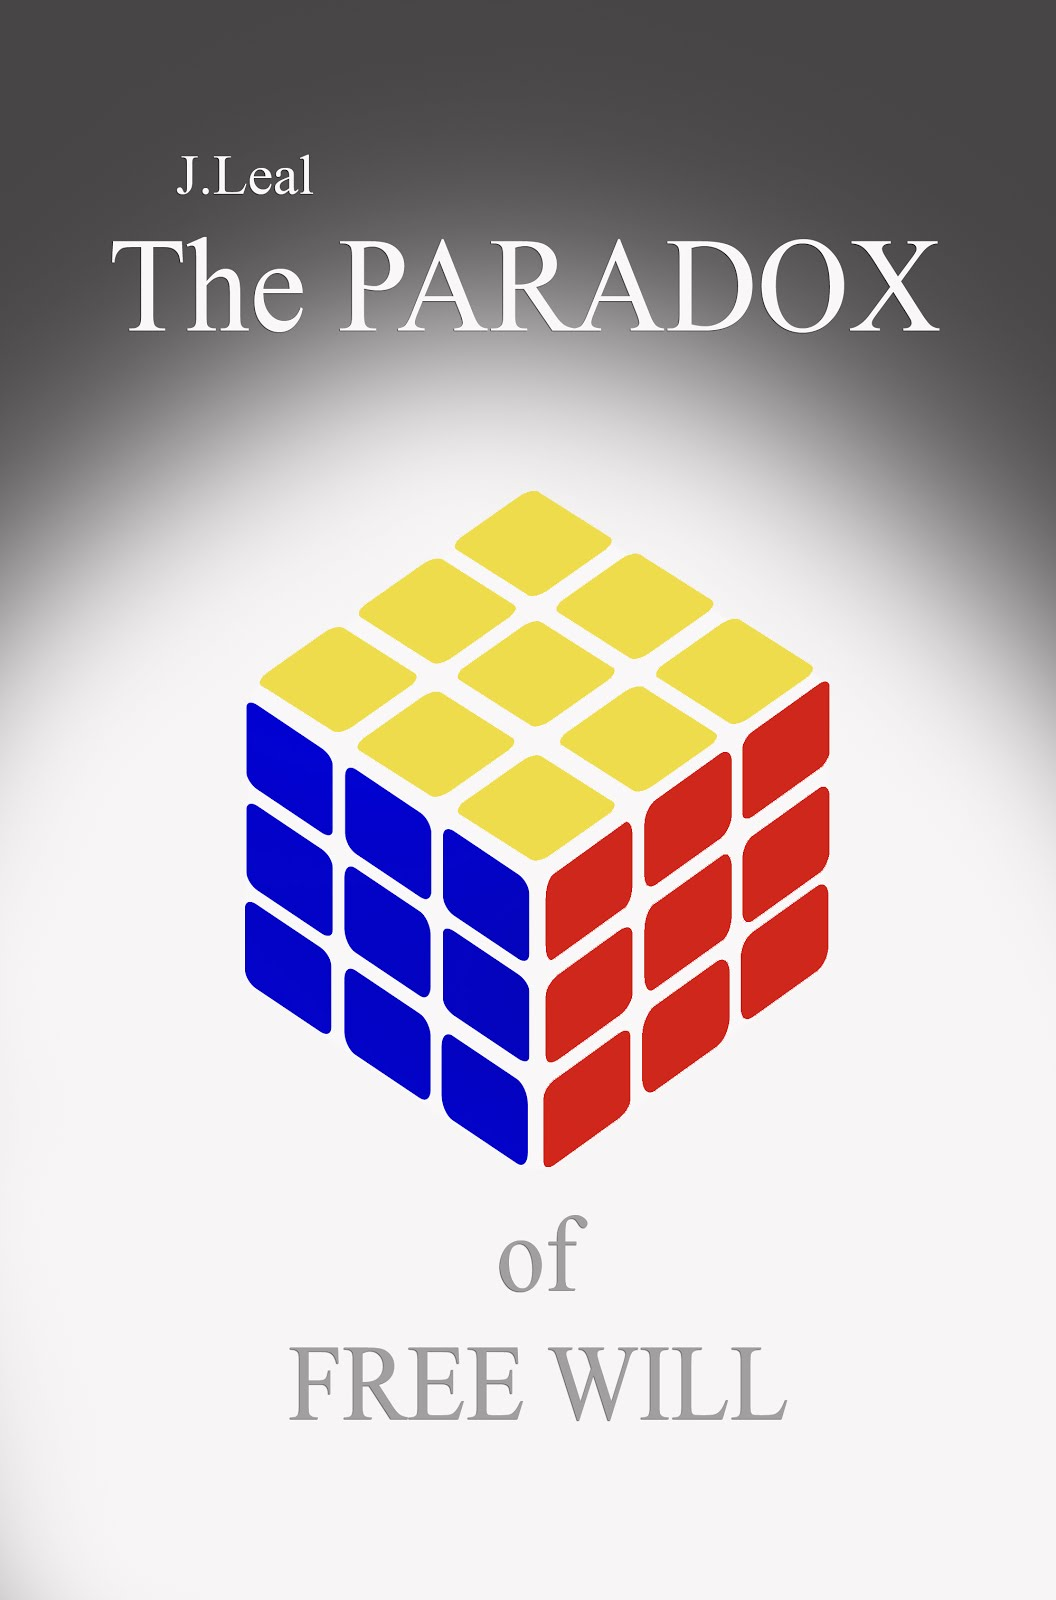 Tapete Yasmin Gold J Leal The Paradox Of Free Will The Matrices Of An